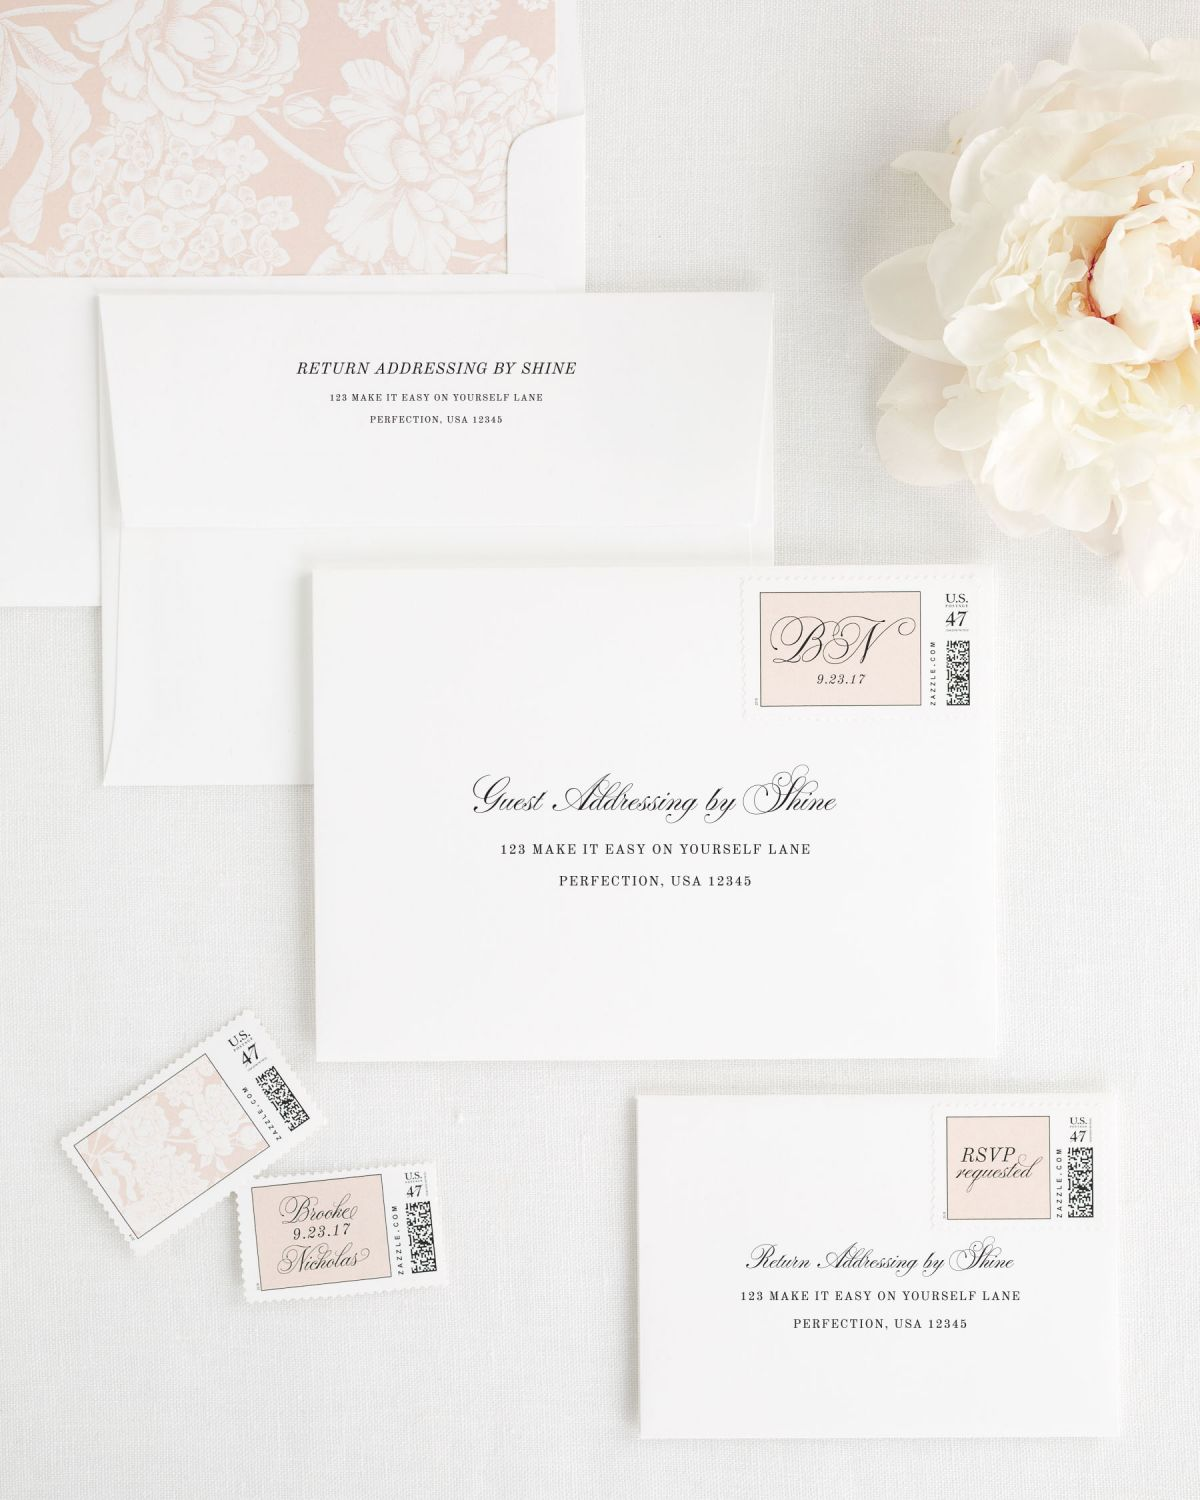 Wedding Invitation Envelopes With Digital Calligraphy And Matching Stamps